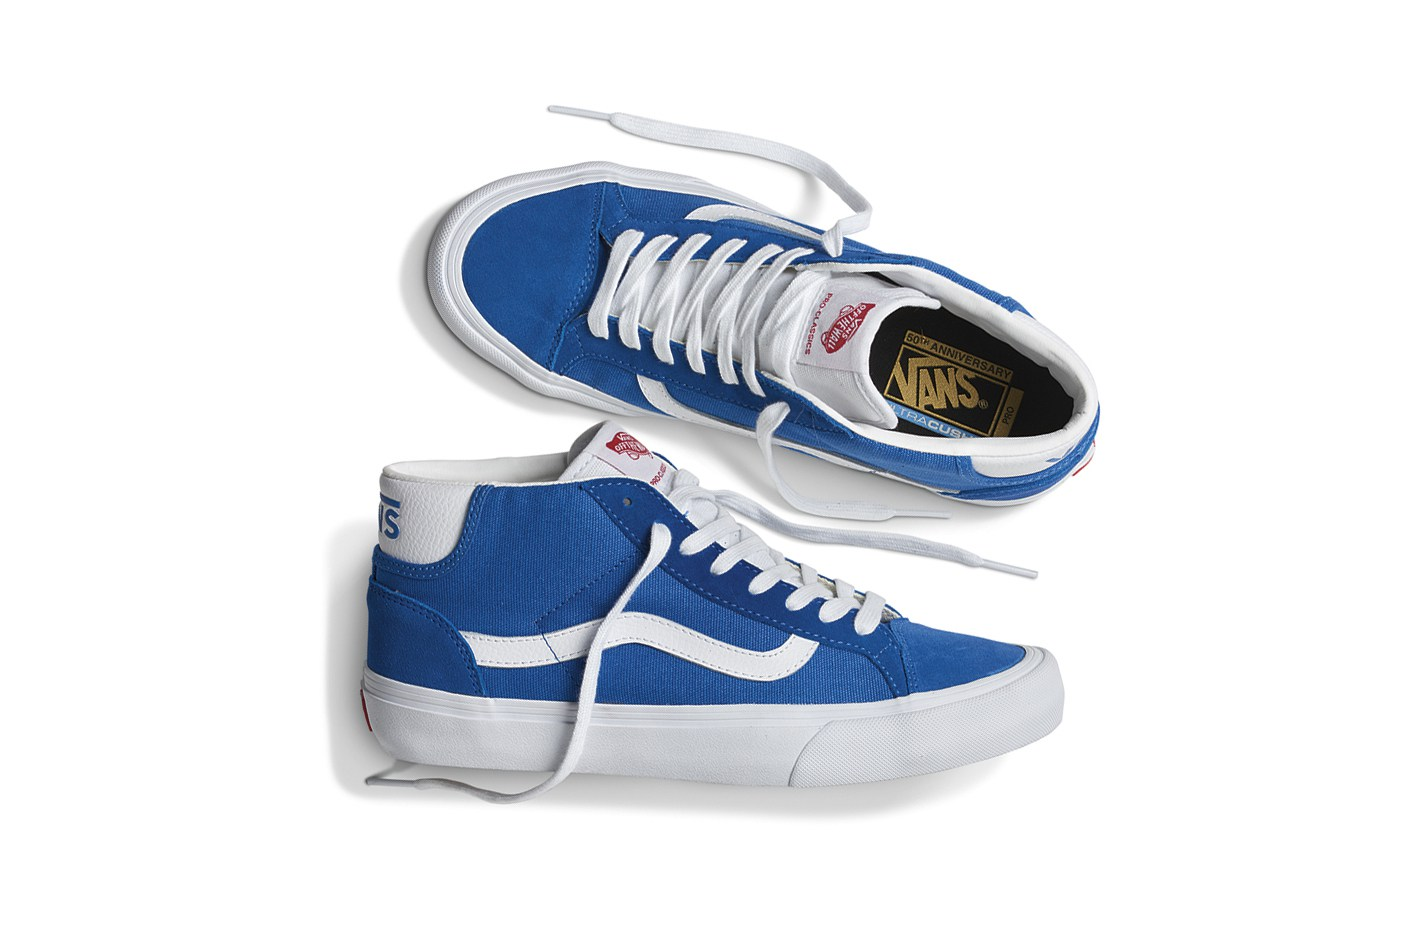 vans-pro-classics-anniversary-collection-launches-5-iconic-models-4